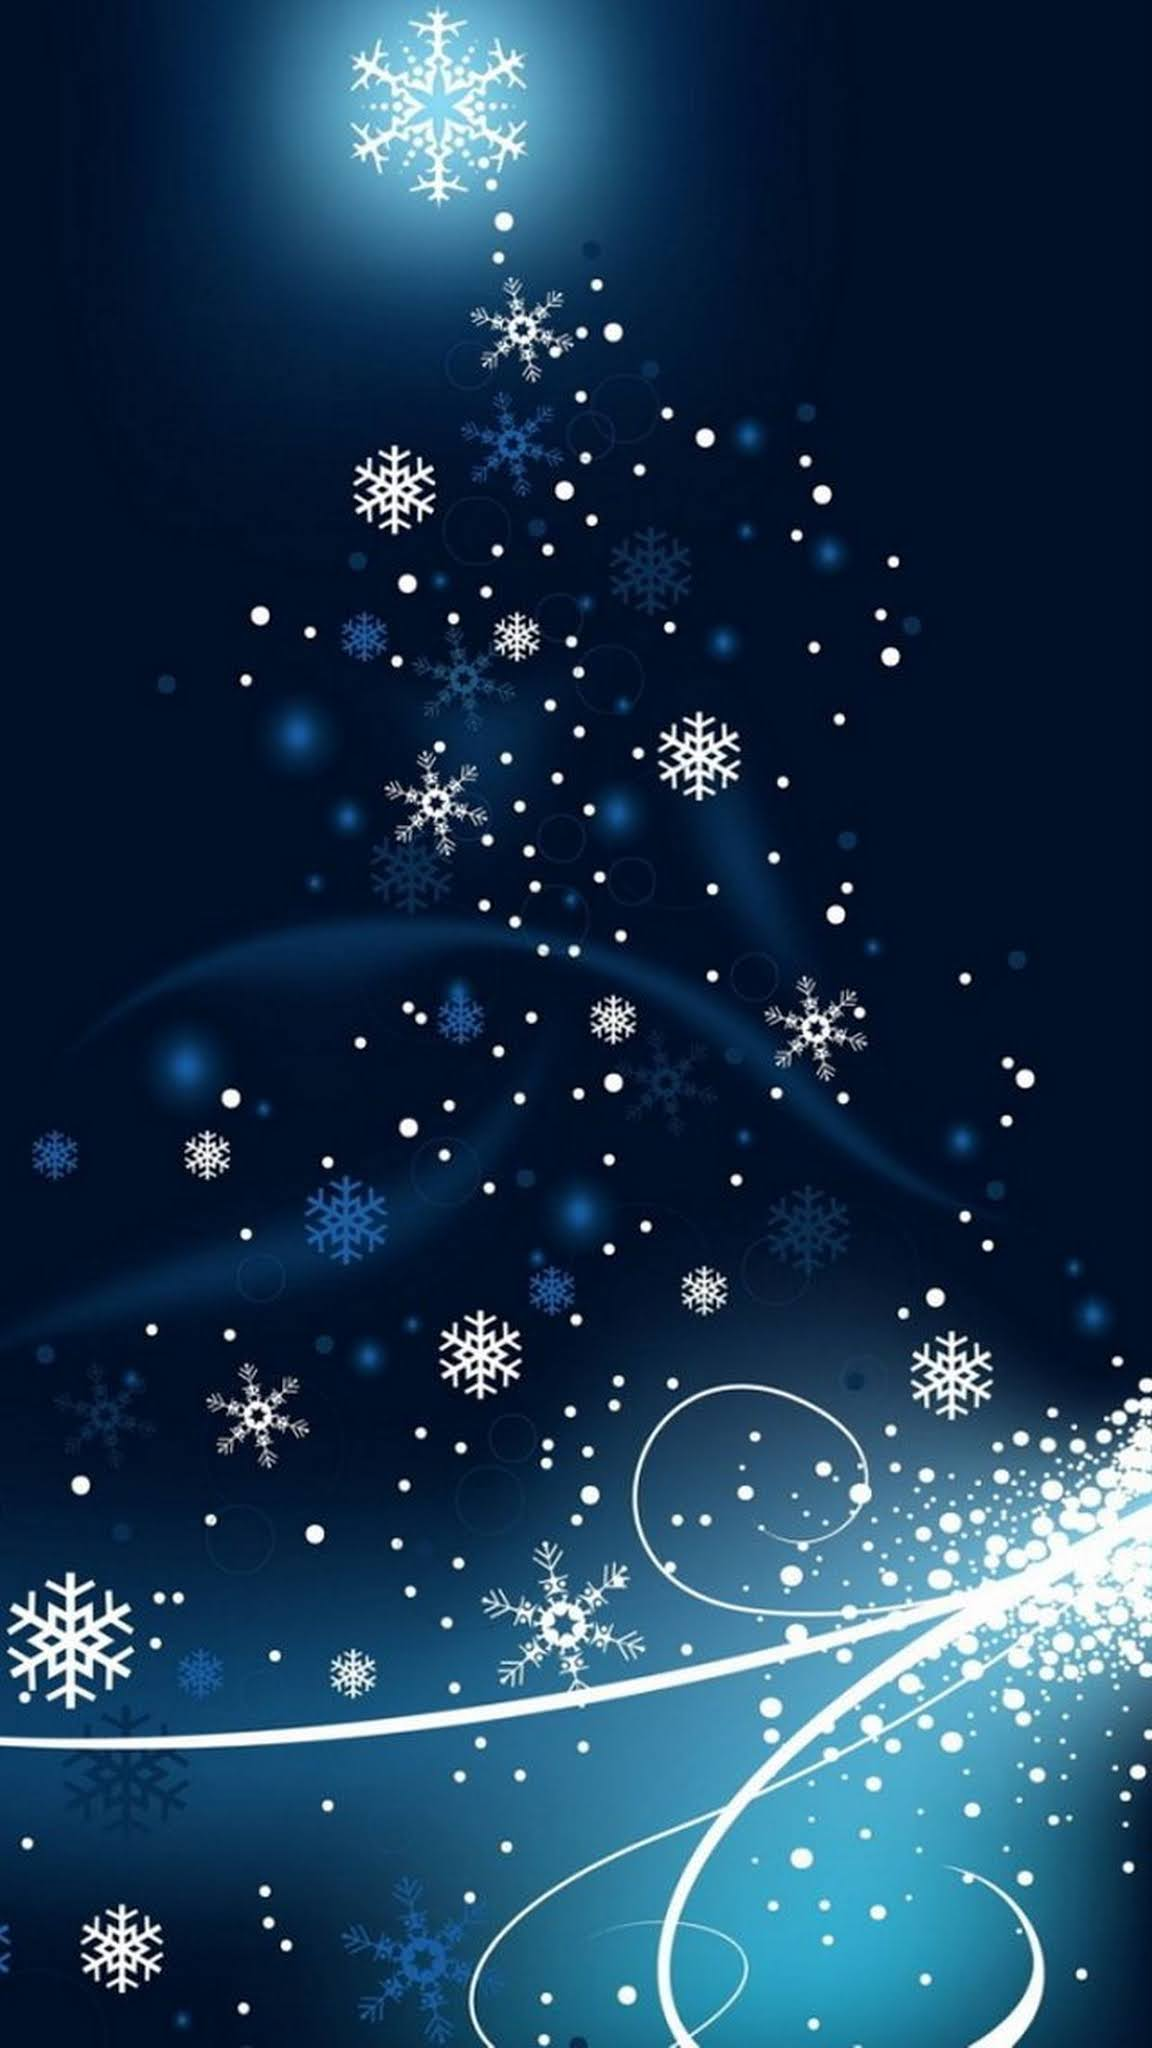 Christmas Abstract HD Wallpaper for iPhone